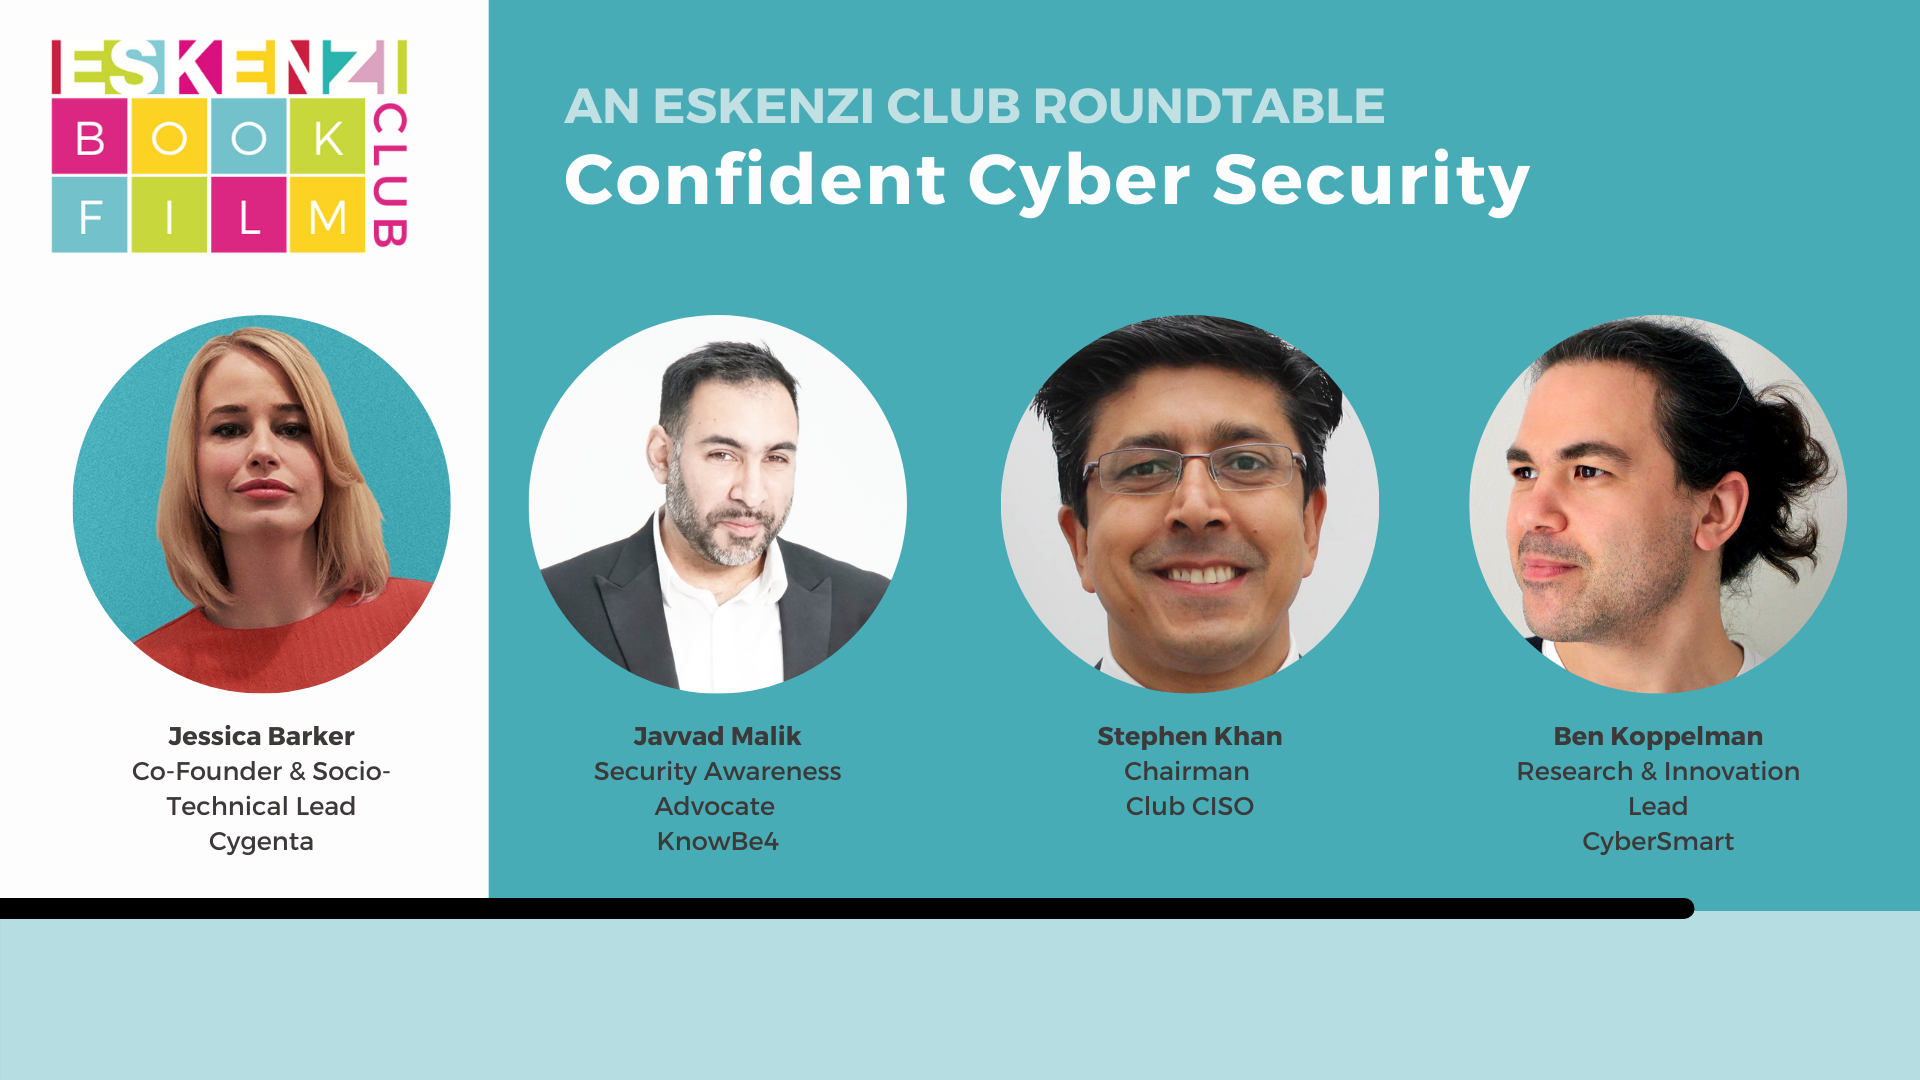 Roundtable Confident Cyber Security